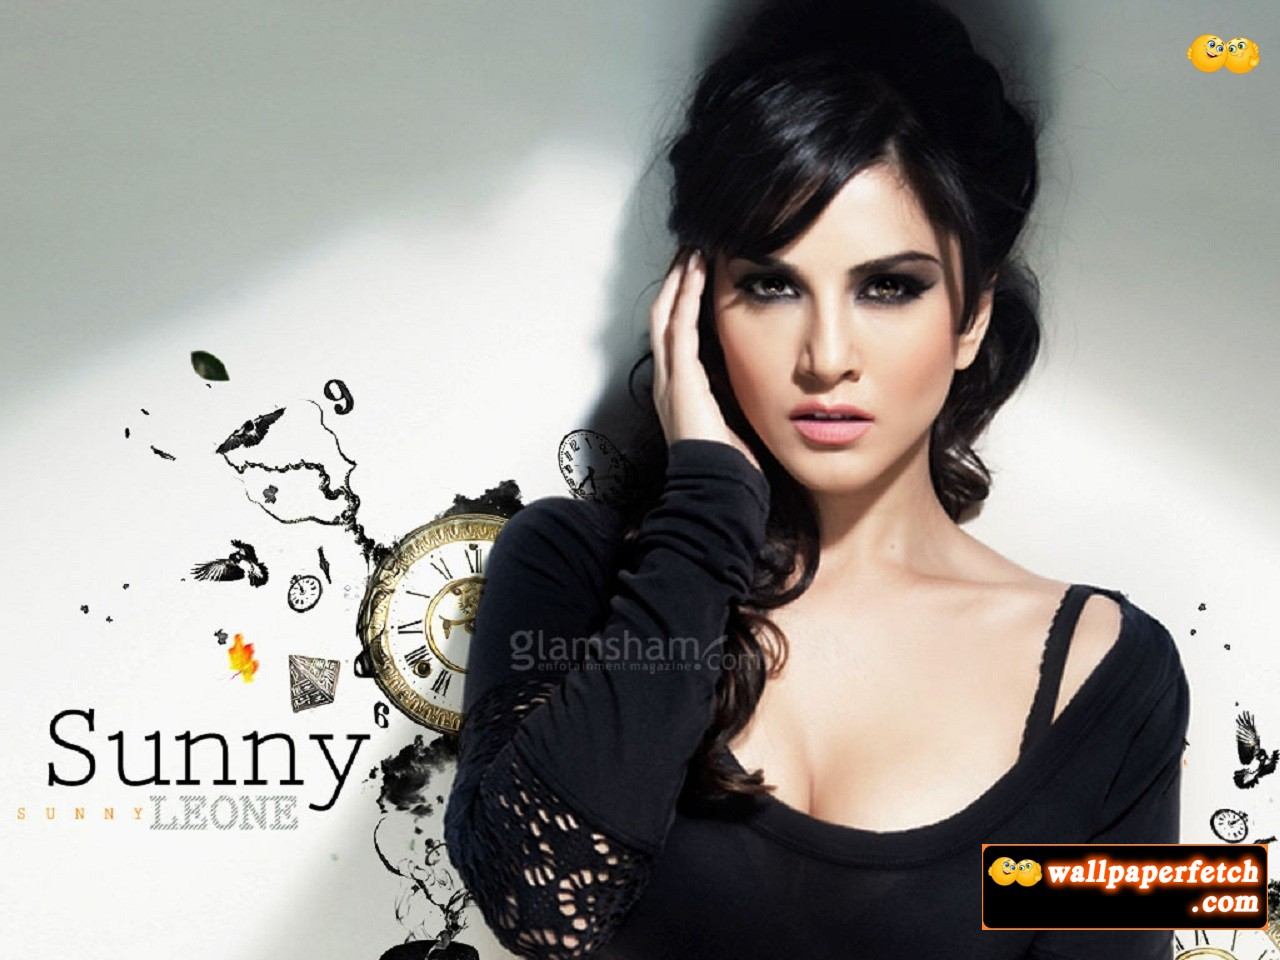 Wallpaper fetch sunny leone hot wallpapers 2012 - Sunny name wallpaper ...